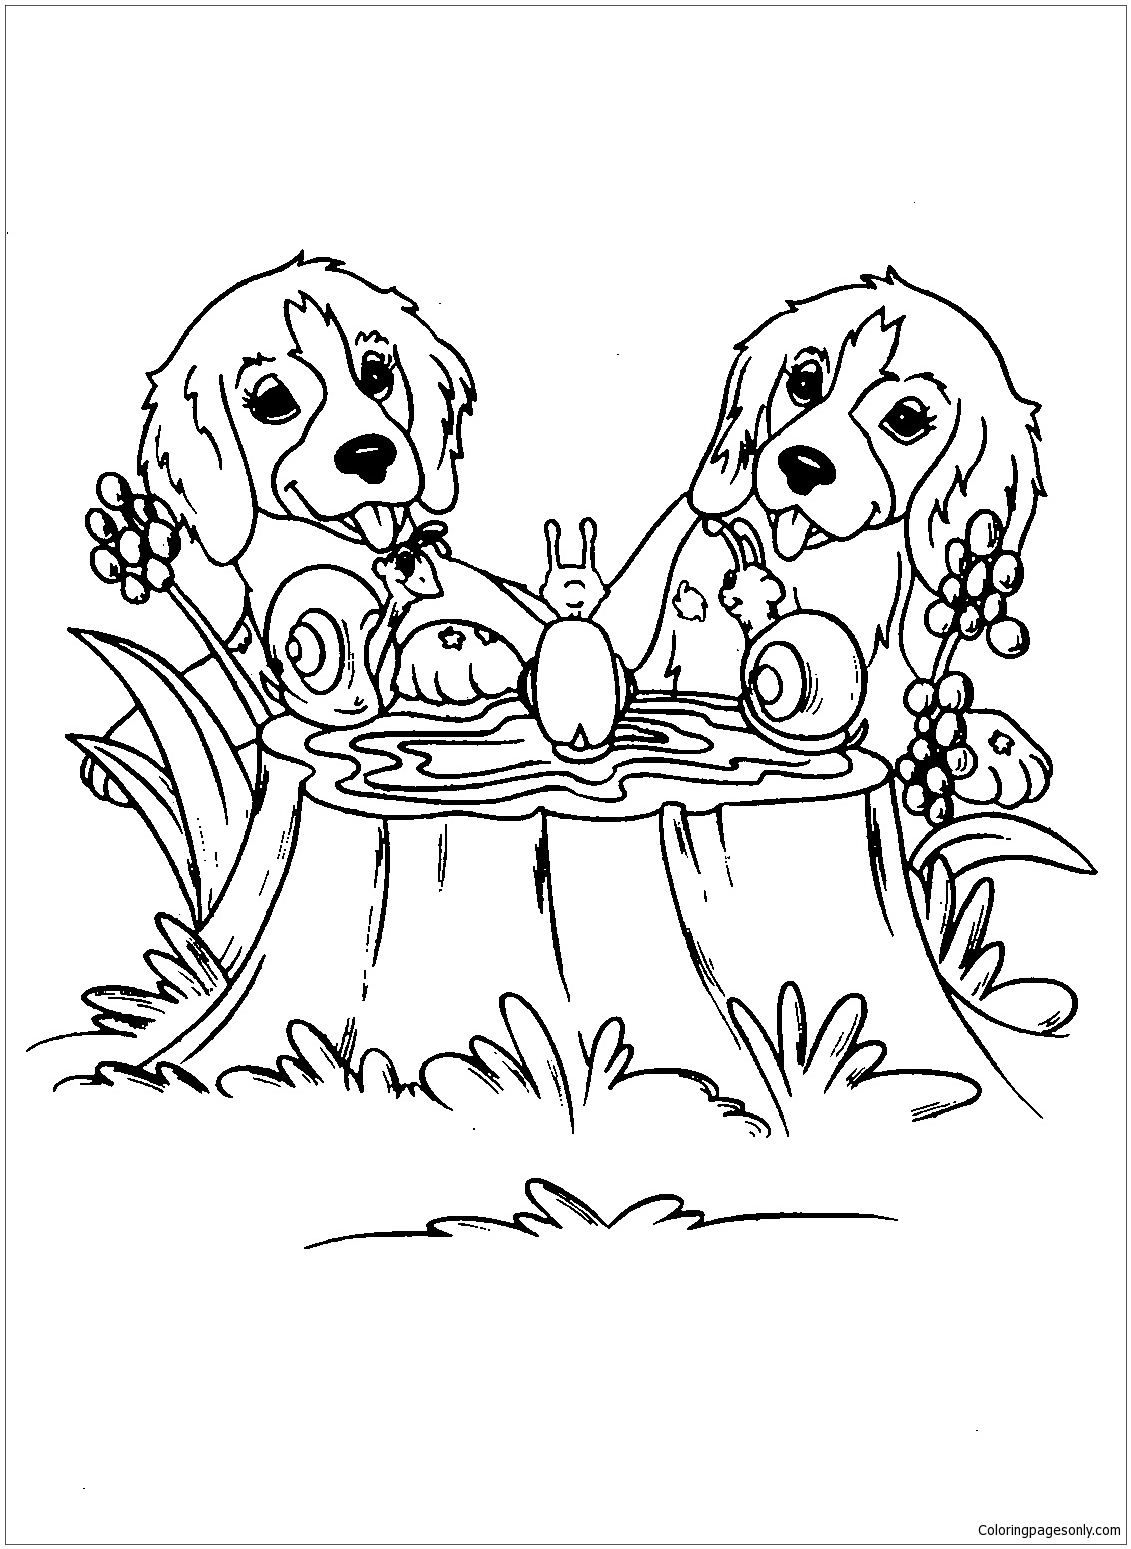 Puppy Dog Pals Coloring Page Two Puppies Together - Get Coloring Pages | 1549x1131